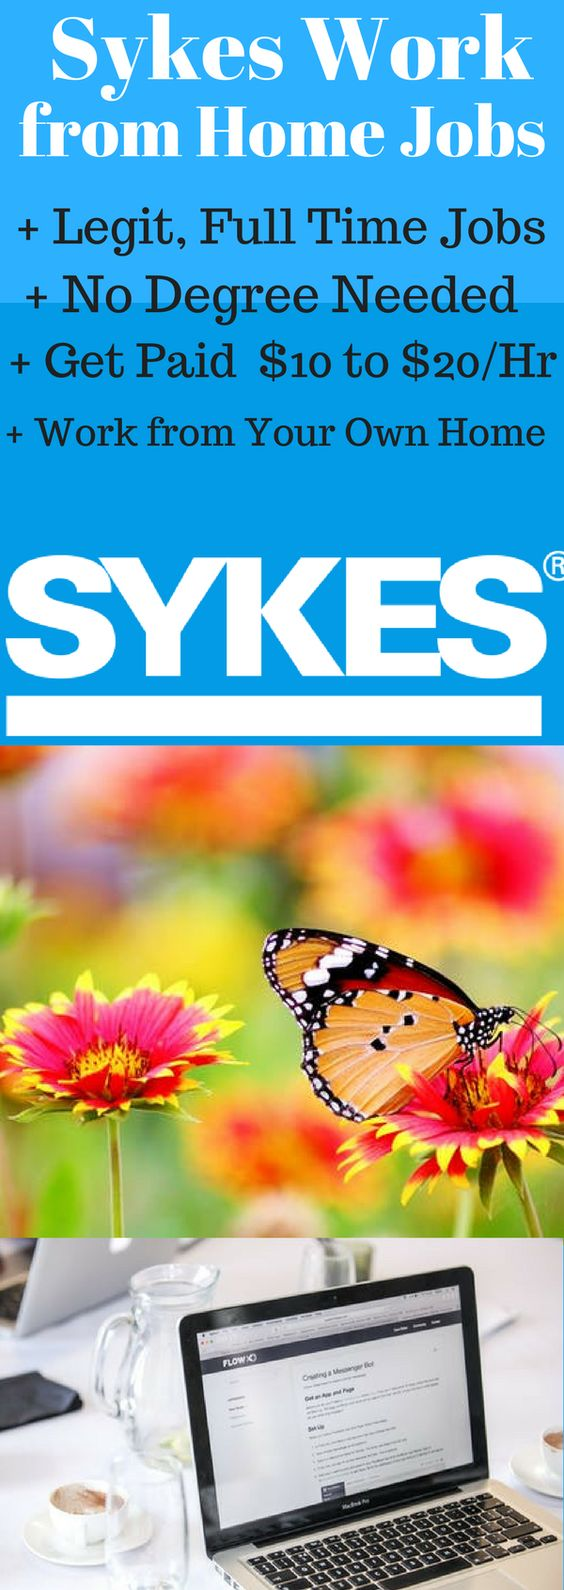 Sykes is Hiring 1000 Work from Home Customer Service Representatives in 40 States